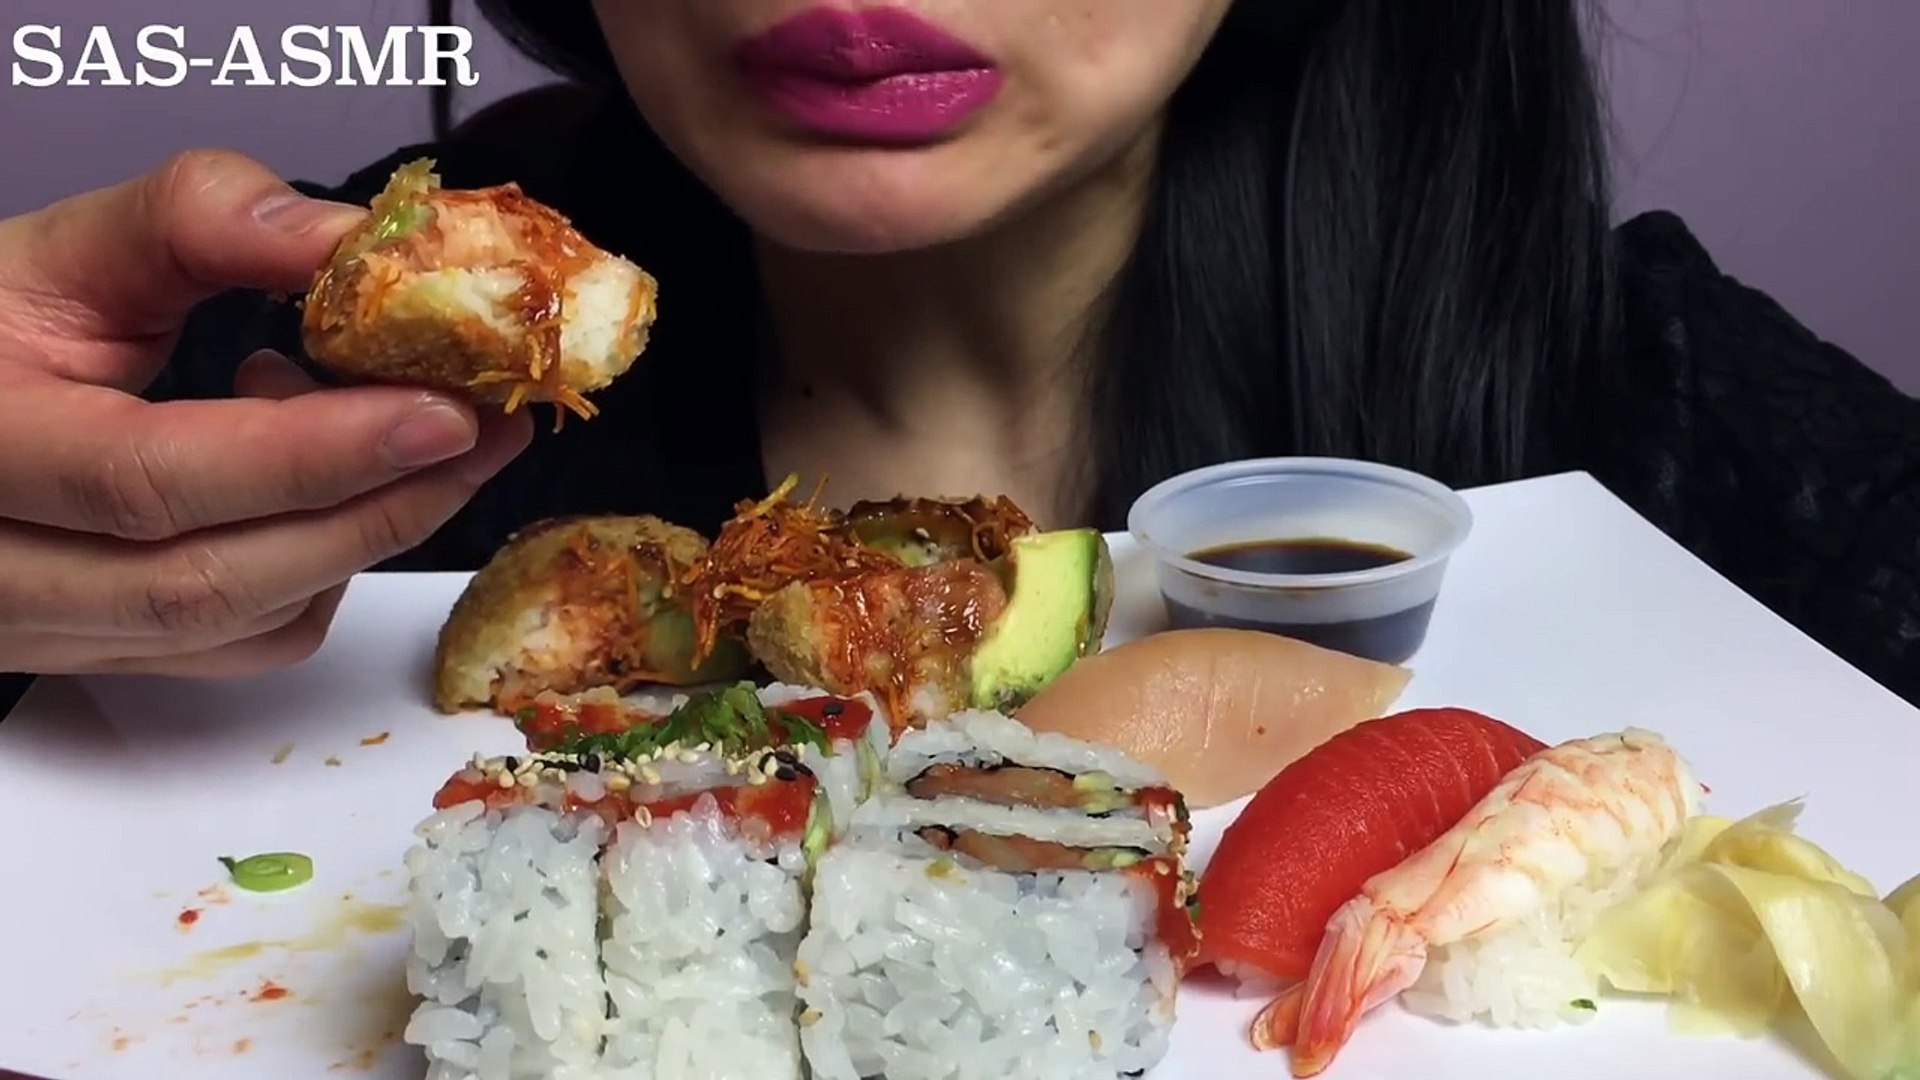 Asmr Sushi Spicy Tuna Sushi Monkey Brain Nigiri Eating Sounds Sas Asmr Video Dailymotion Thank you so much for being here and spending time with me. asmr sushi spicy tuna sushi monkey brain nigiri eating sounds sas asmr